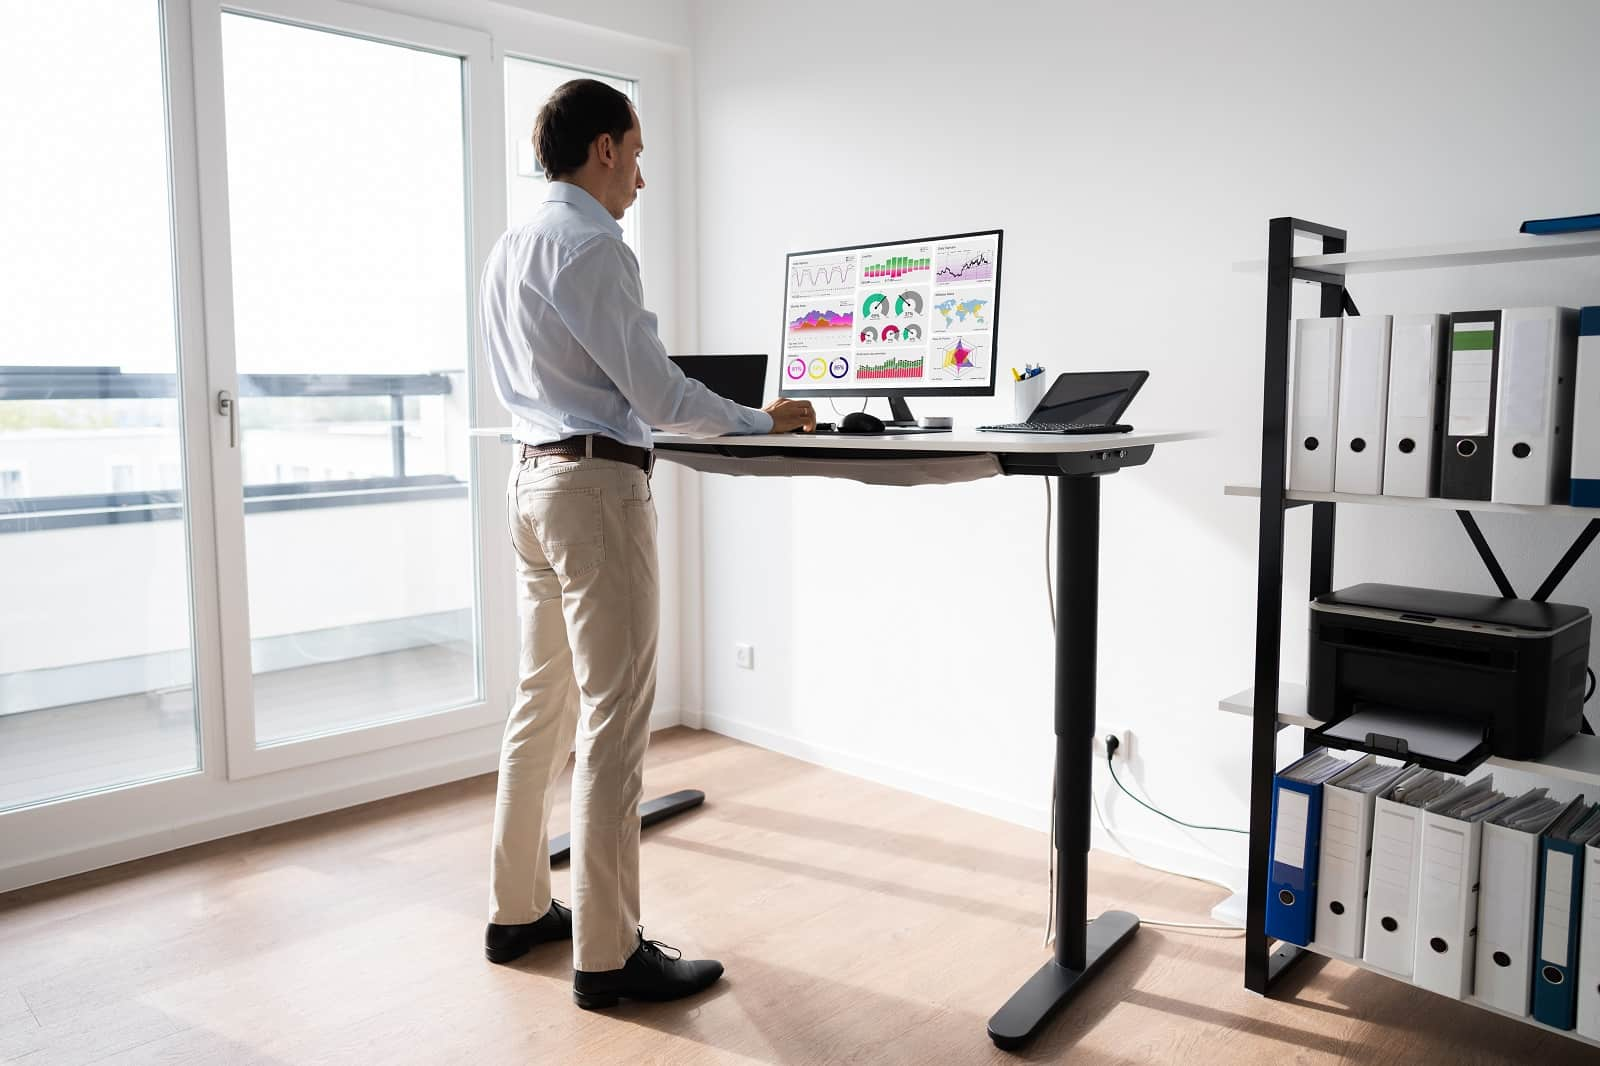 5 Factors To Consider When Choosing A Standing Desk. Working in the minimalistic home office with white walls and light wooden floor